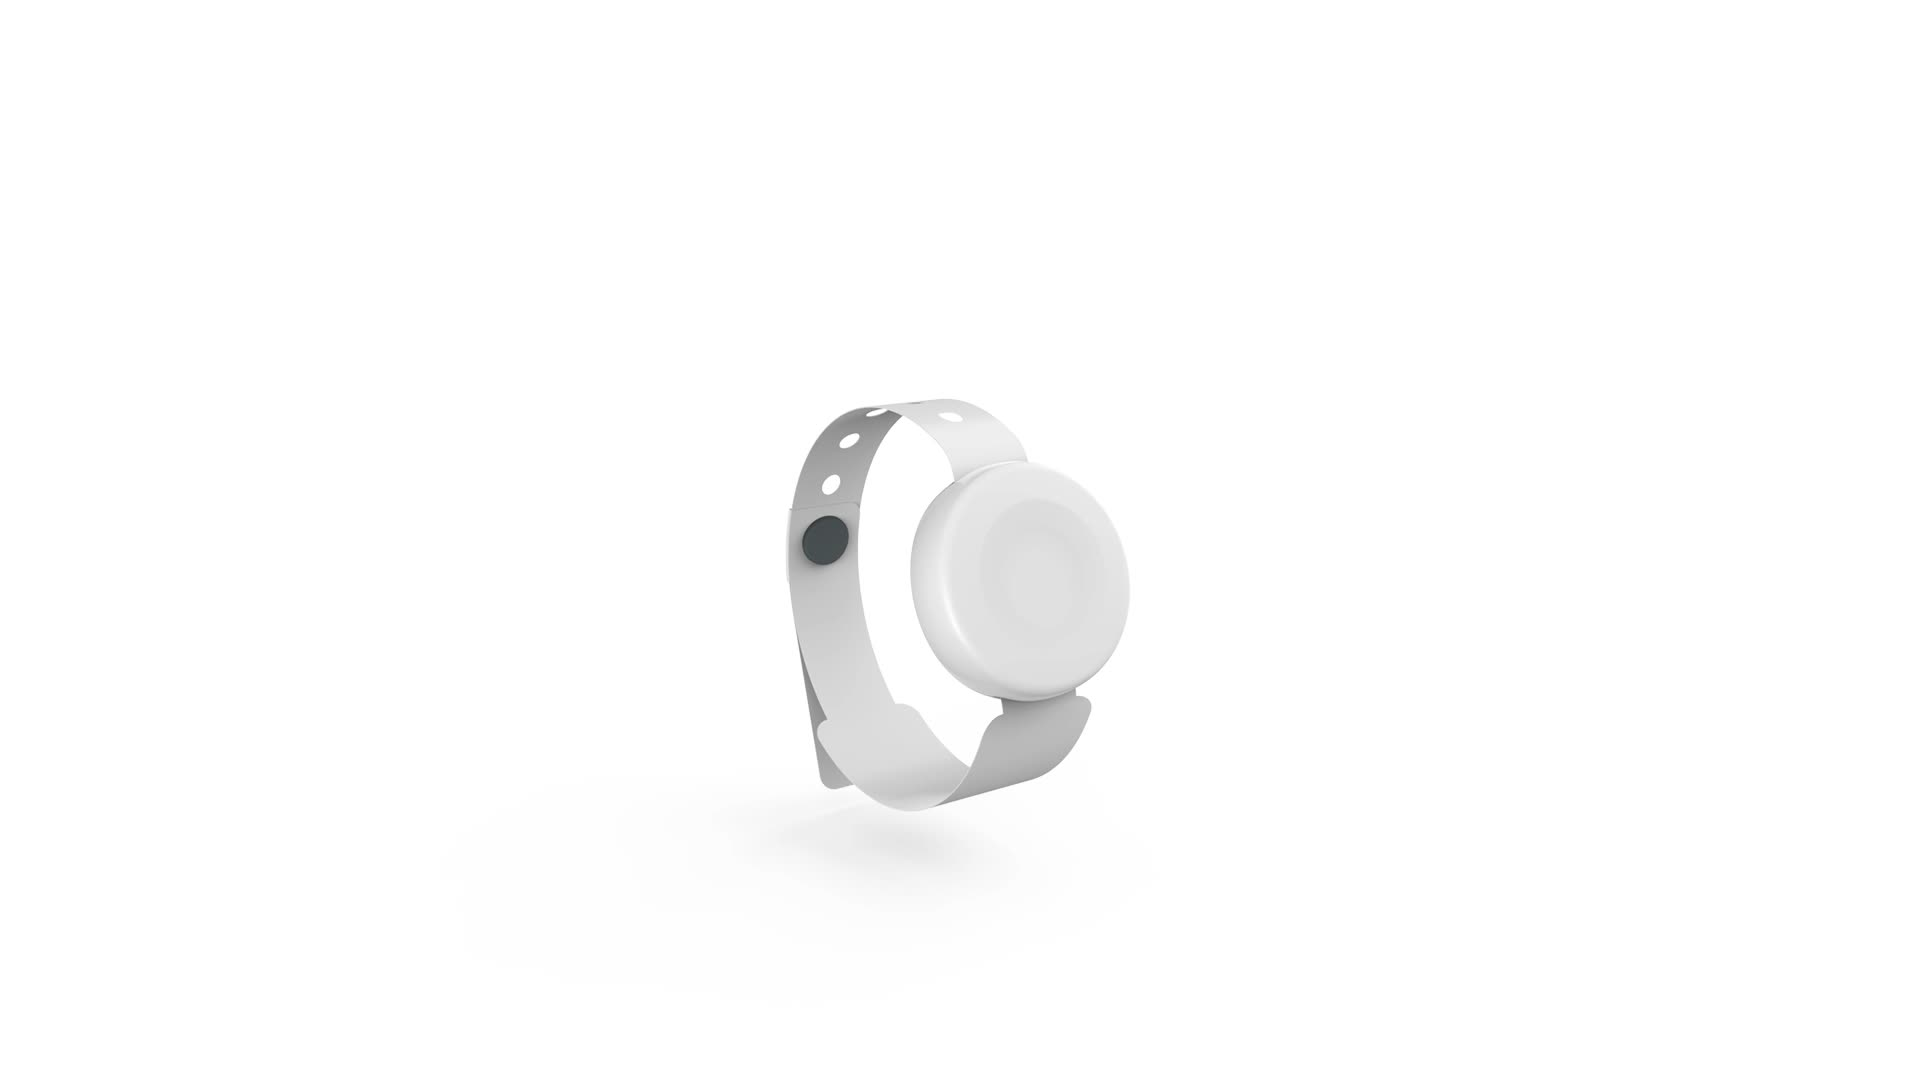 waterproof durable small ble bluetooth person tracking ibeacon nrf52840 smart band with button beacon